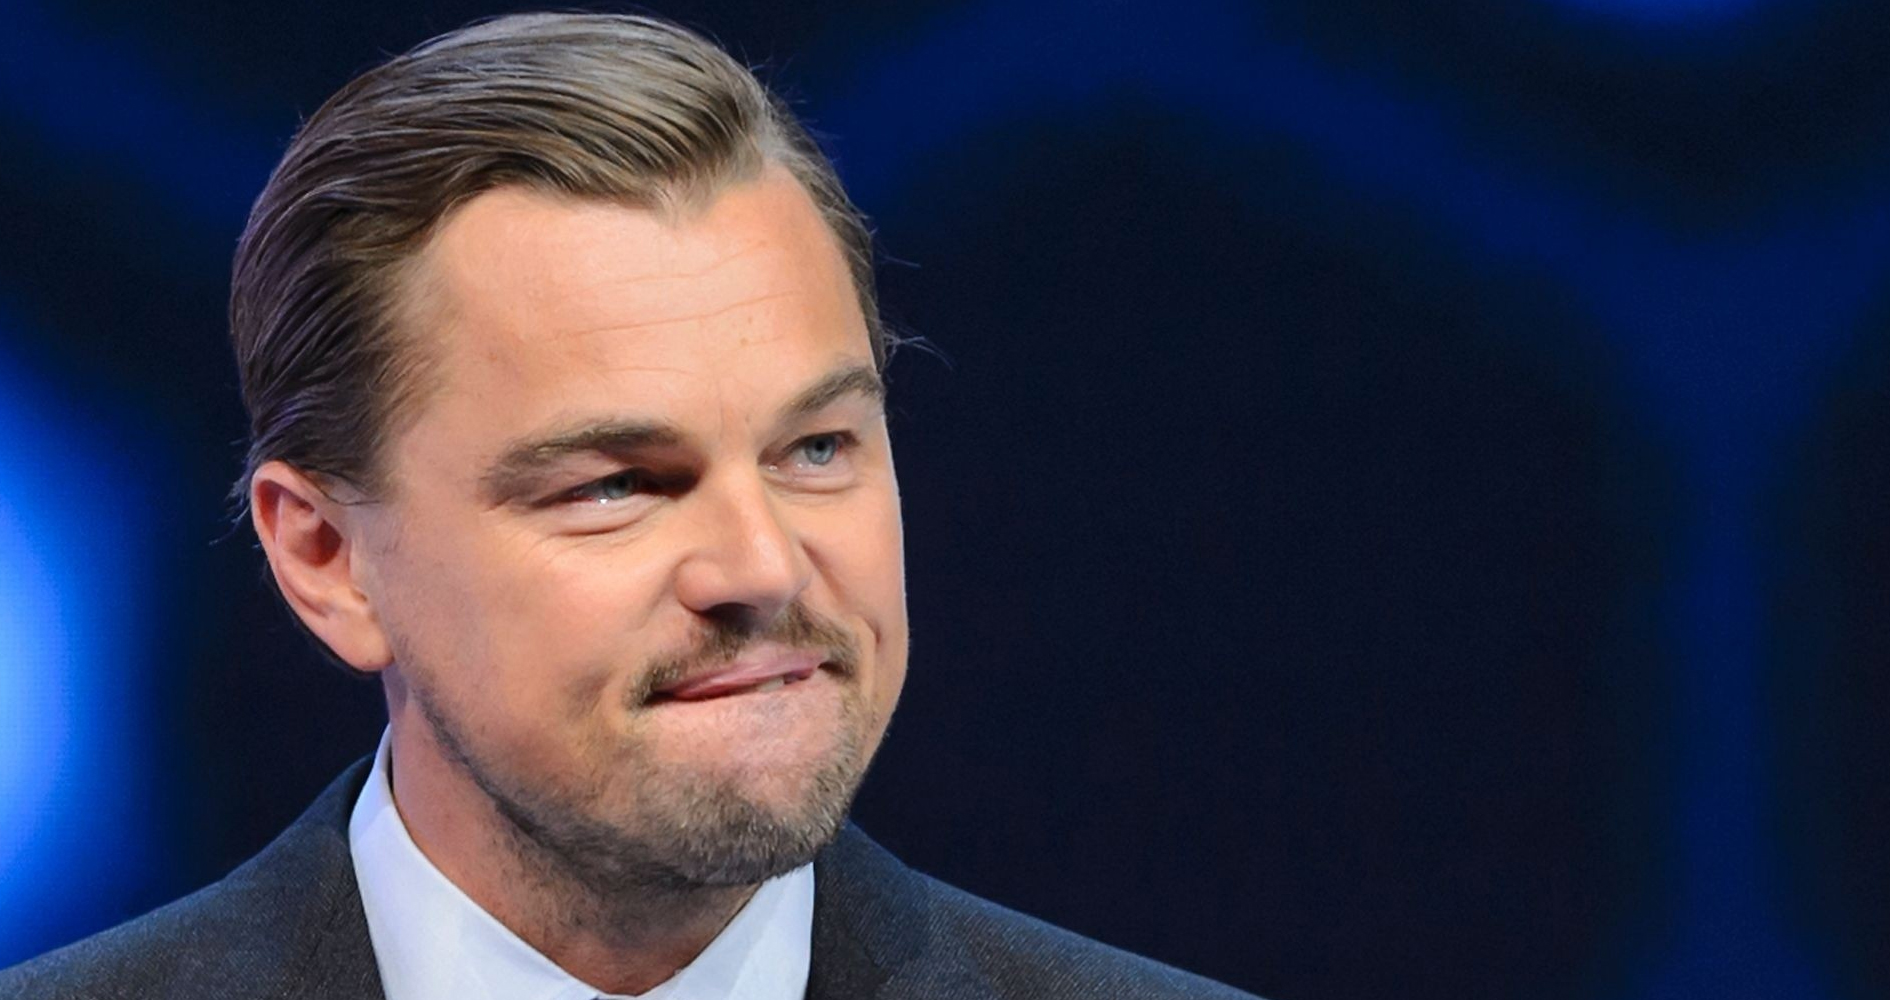 Leonardo DiCaprio Launches Scathing Attack On 'Corporate Greed' Of Energy Industry – Video